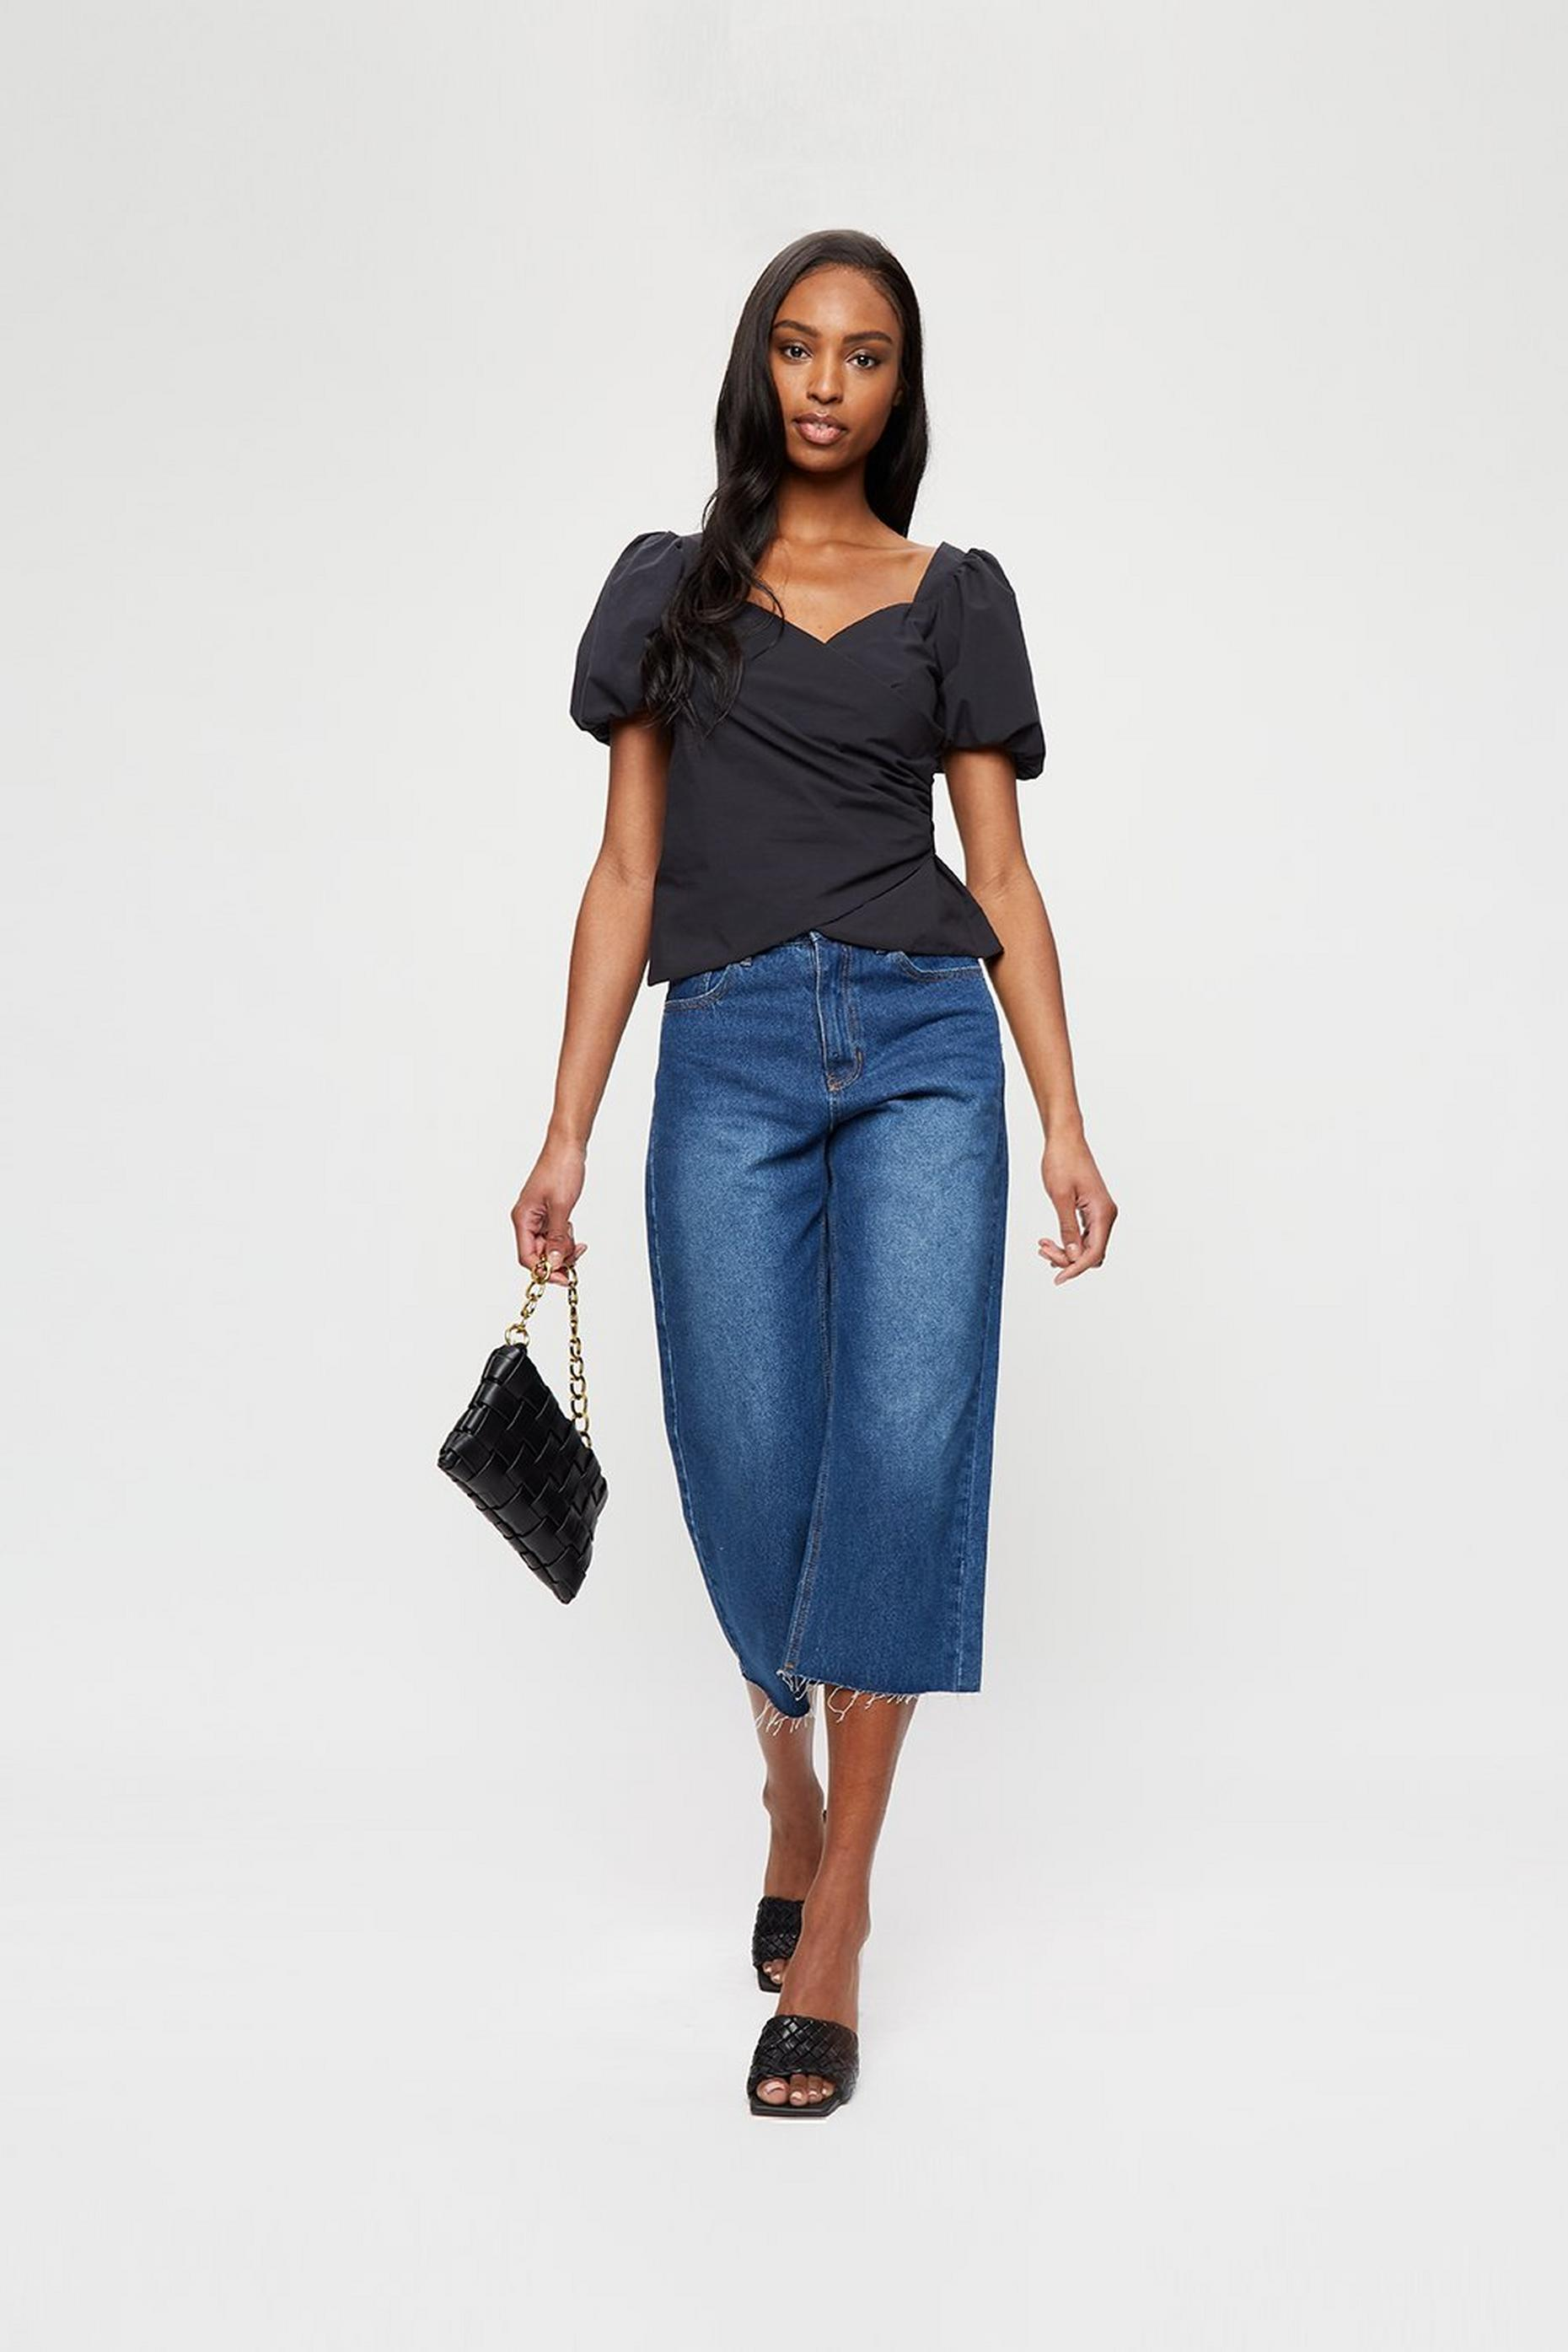 Black Poplin Wrap Top